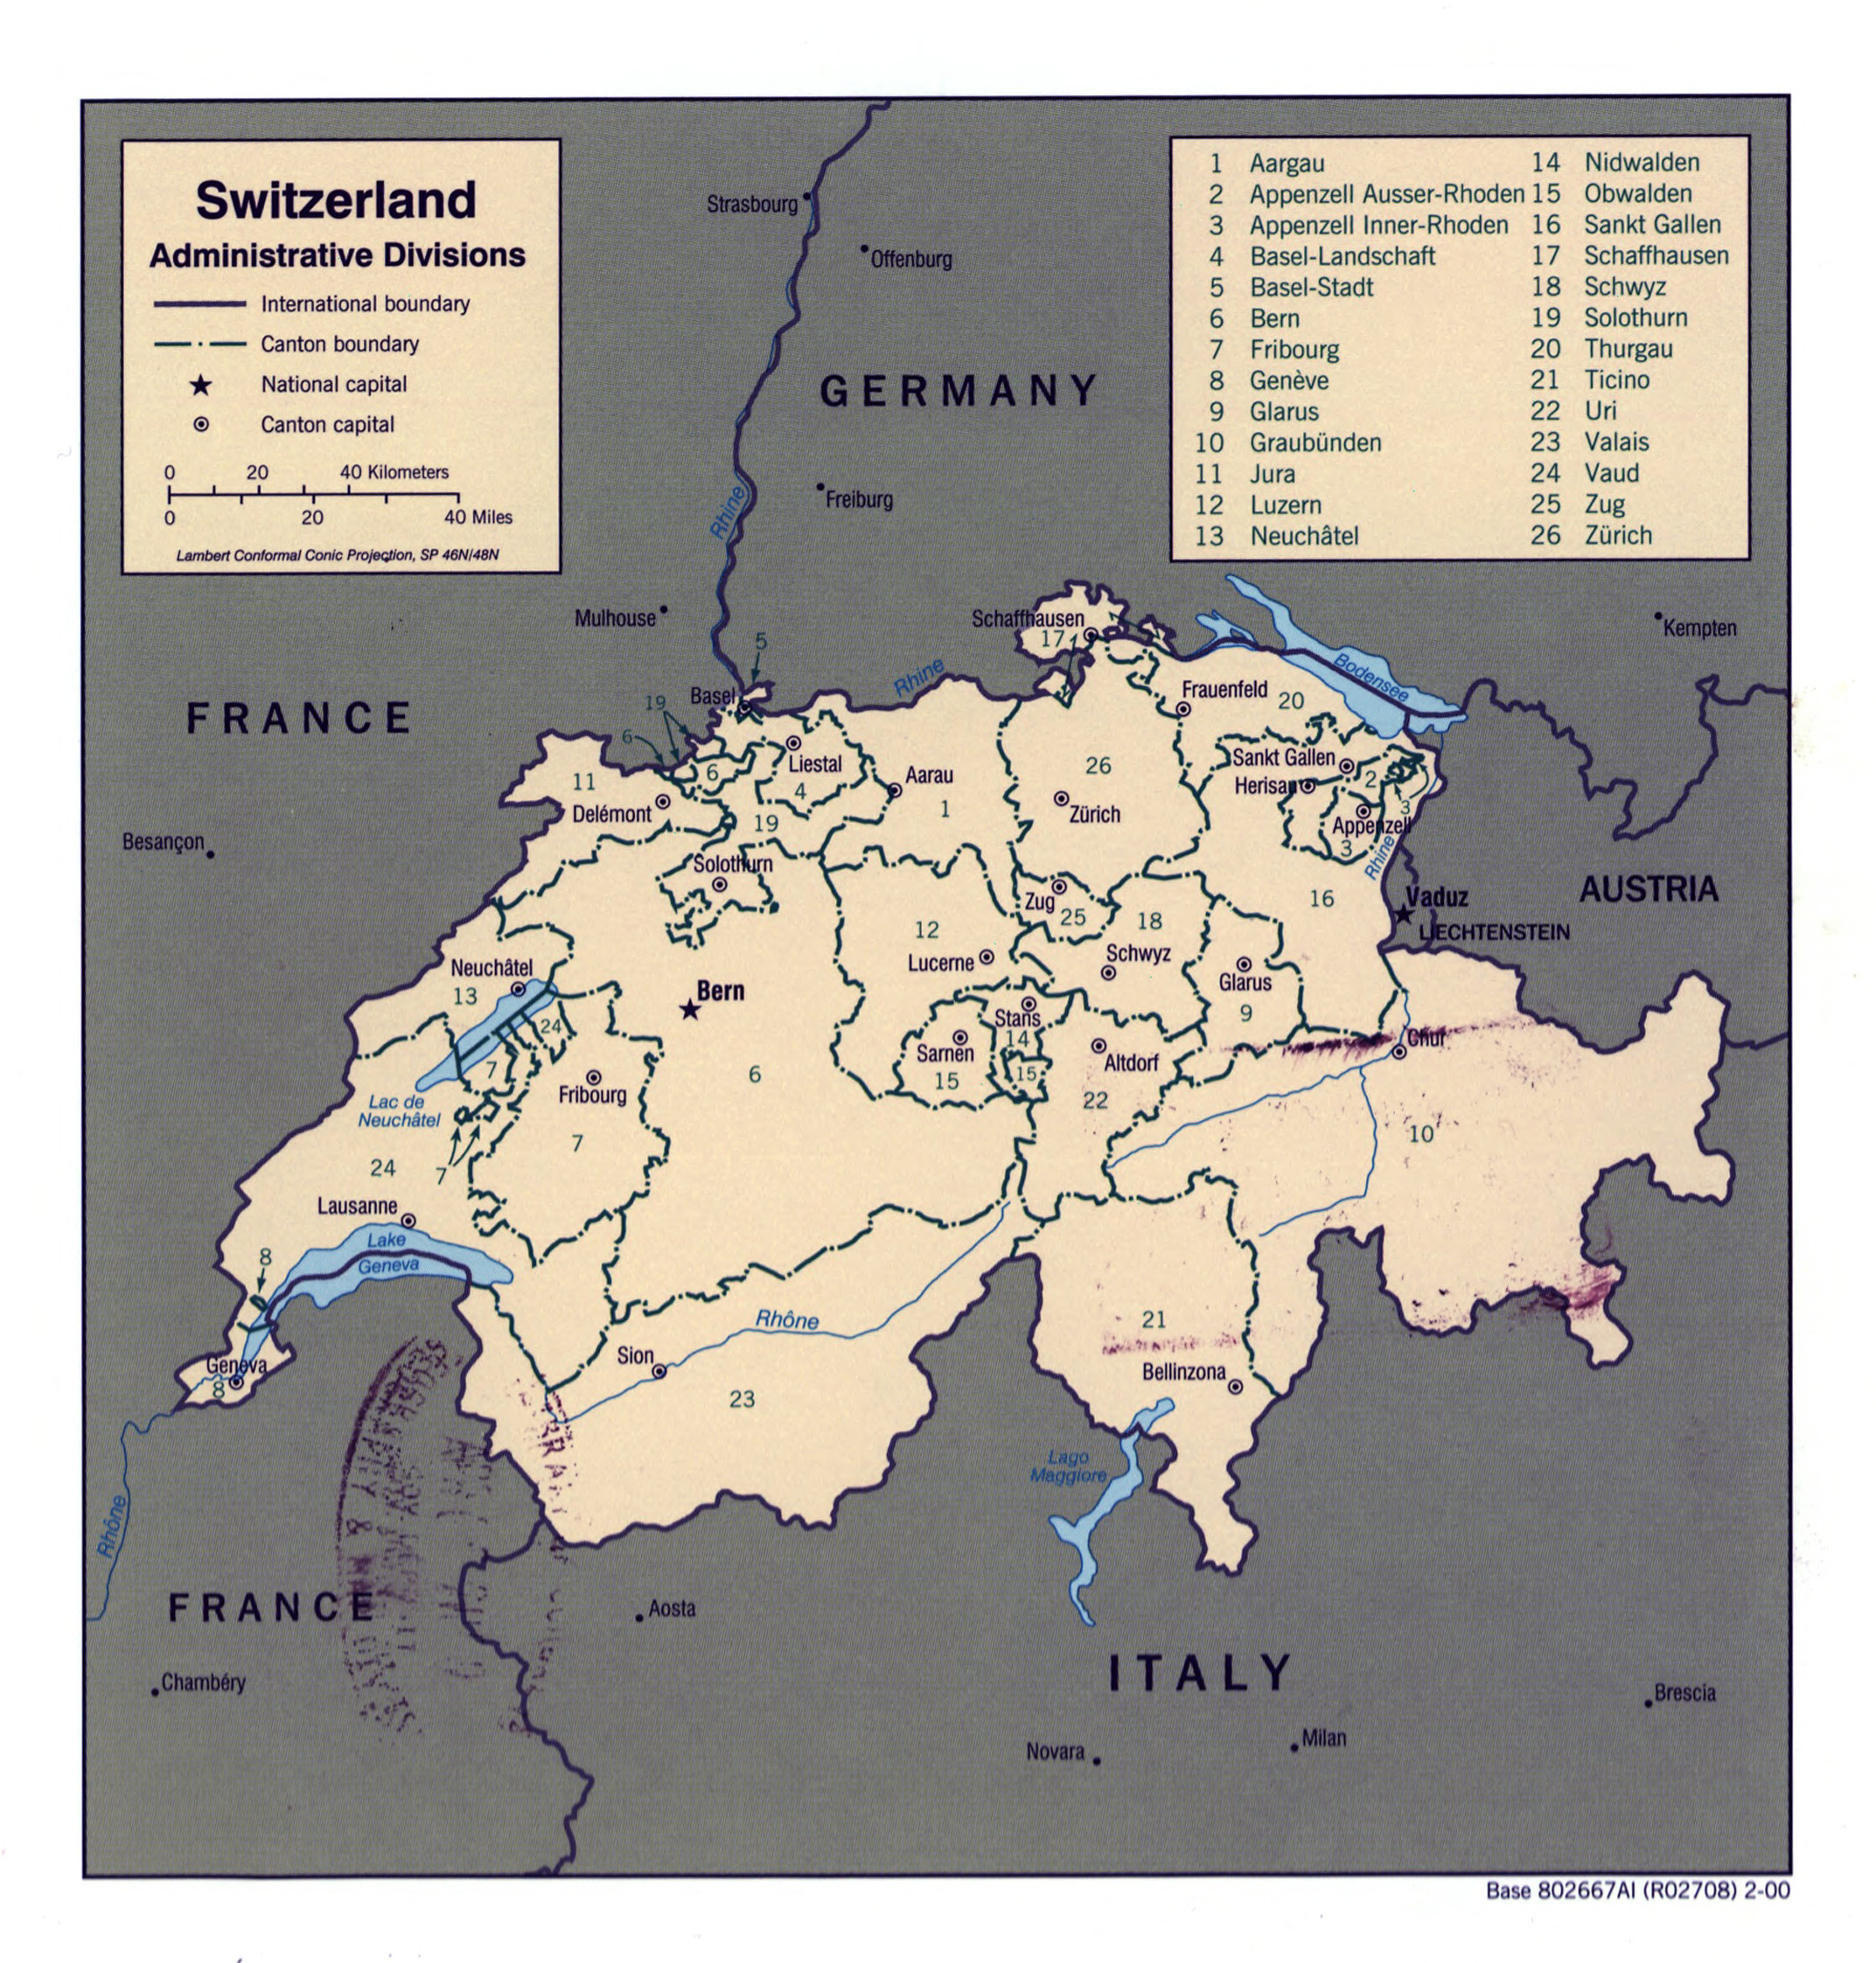 Large detailed administrative divisions map of Switzerland 2000